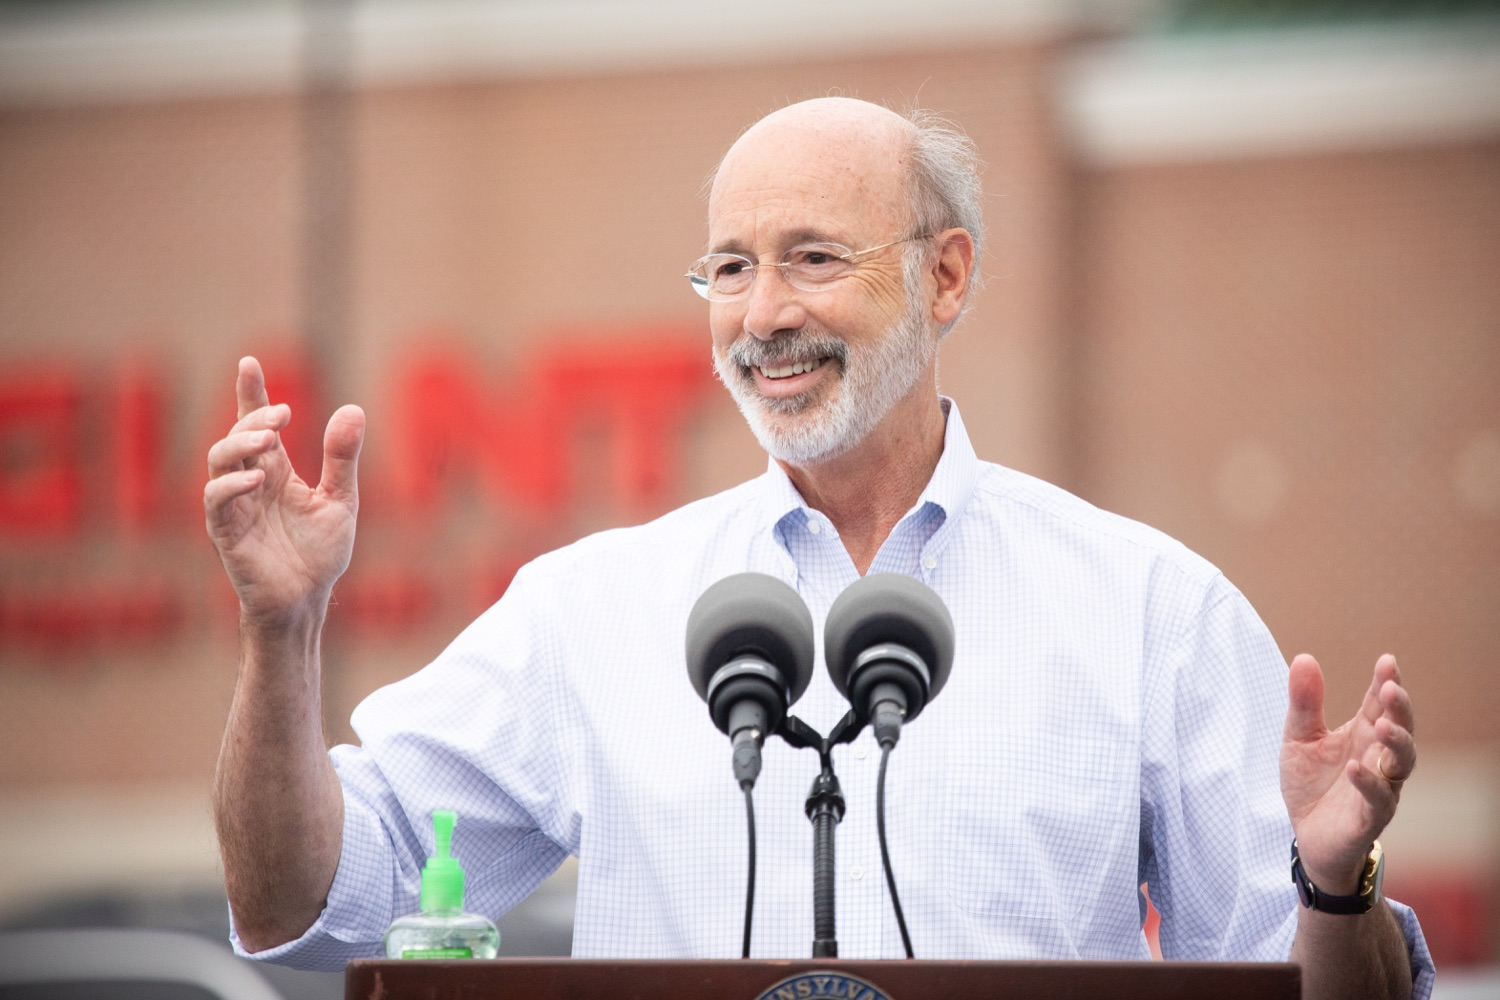 """<a href=""""https://filesource.wostreaming.net/commonwealthofpa/photo/18166_gov_cares_act_dz_19.jpg"""" target=""""_blank"""">⇣Download Photo<br></a>Pennsylvania Governor Tom Wolf speaking to reporters at the announcement. Today, Governor Tom Wolf announced the availability of $50 million in grant funding to help employers provide hazard pay to employees in life-sustaining occupations during the COVID-19 pandemic. Hazard pay is intended to keep front-line employees working in vital industry sectors across Pennsylvania.  Harrisburg, PA  July 16, 2020"""